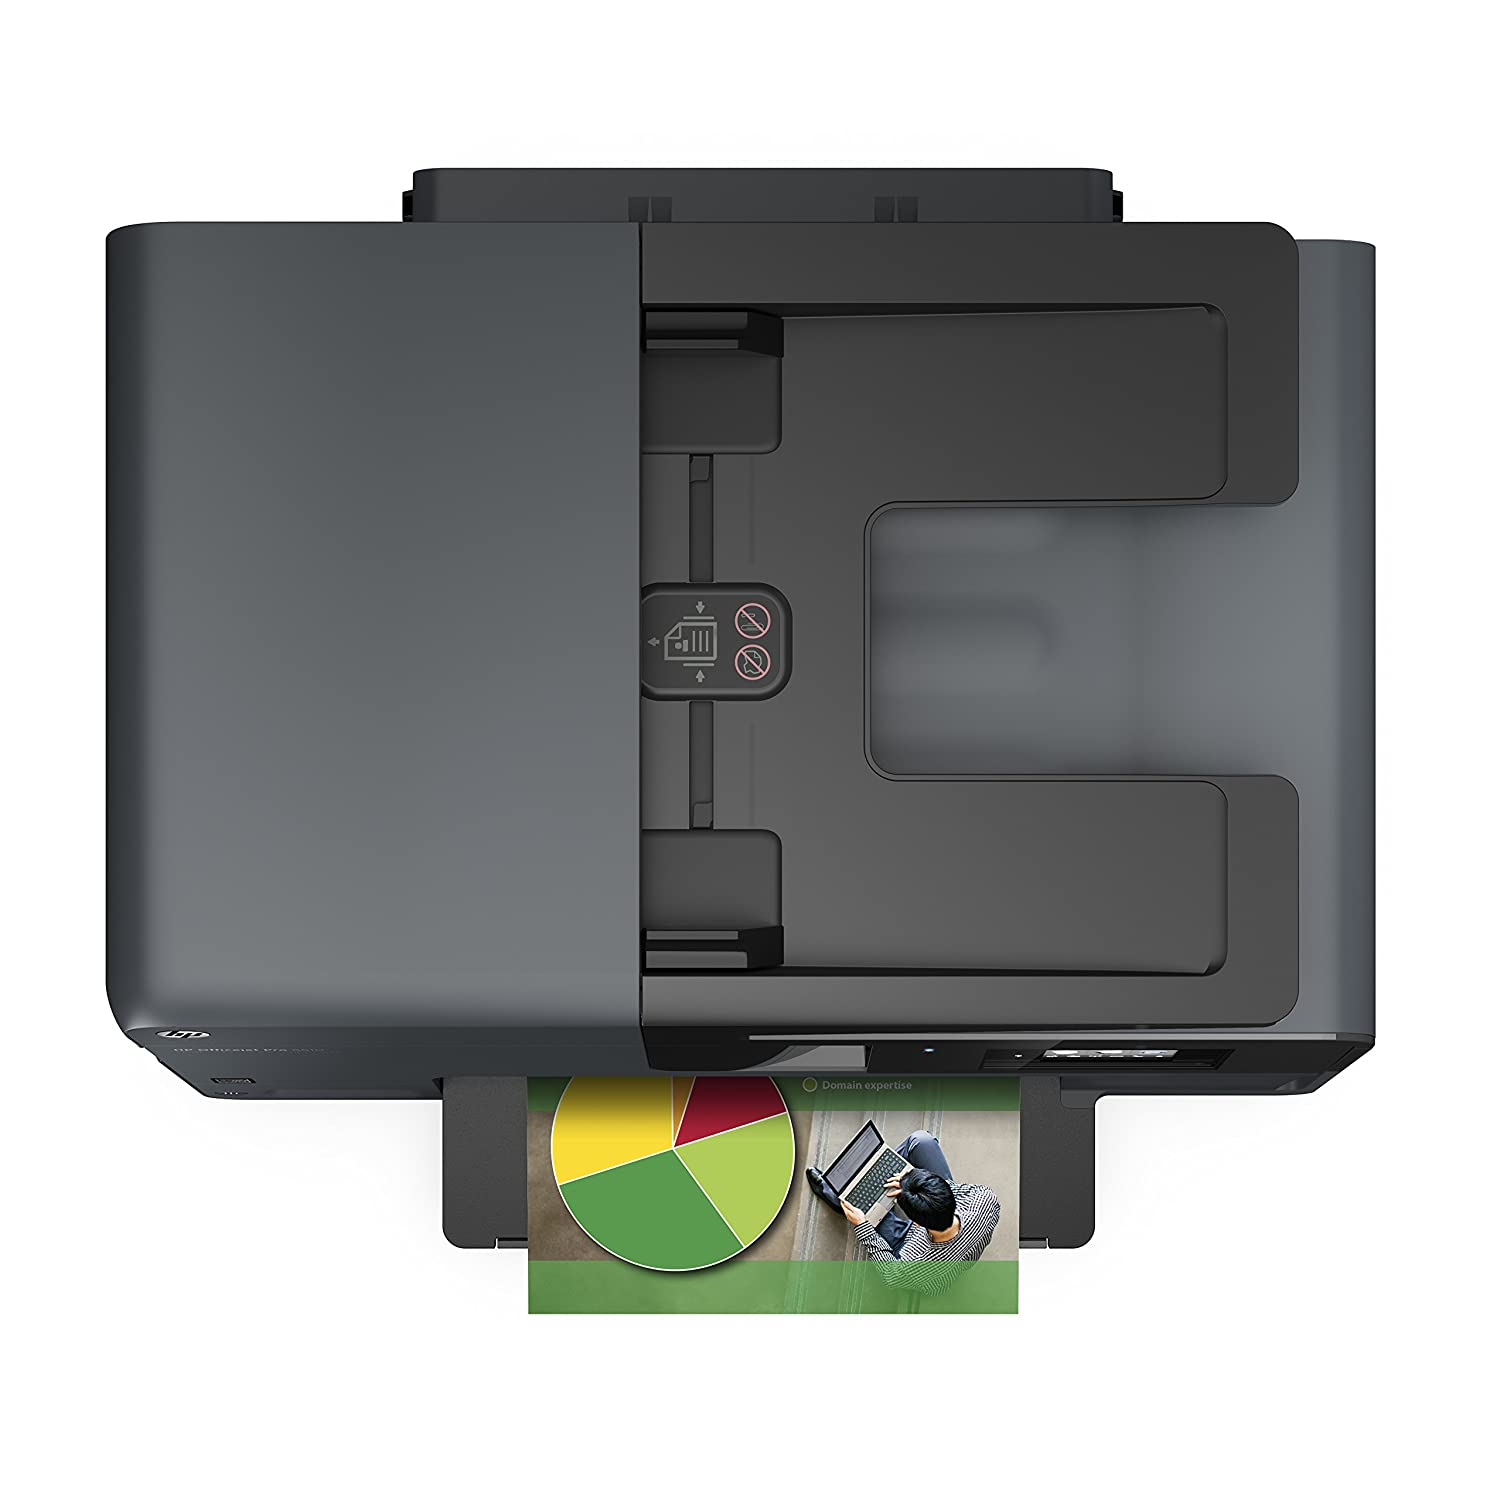 HP OfficeJet Pro 8610 All-in-One Color Photo Printer with Wireless & Mobile Printing, Instant Ink ready. (A7F64A)